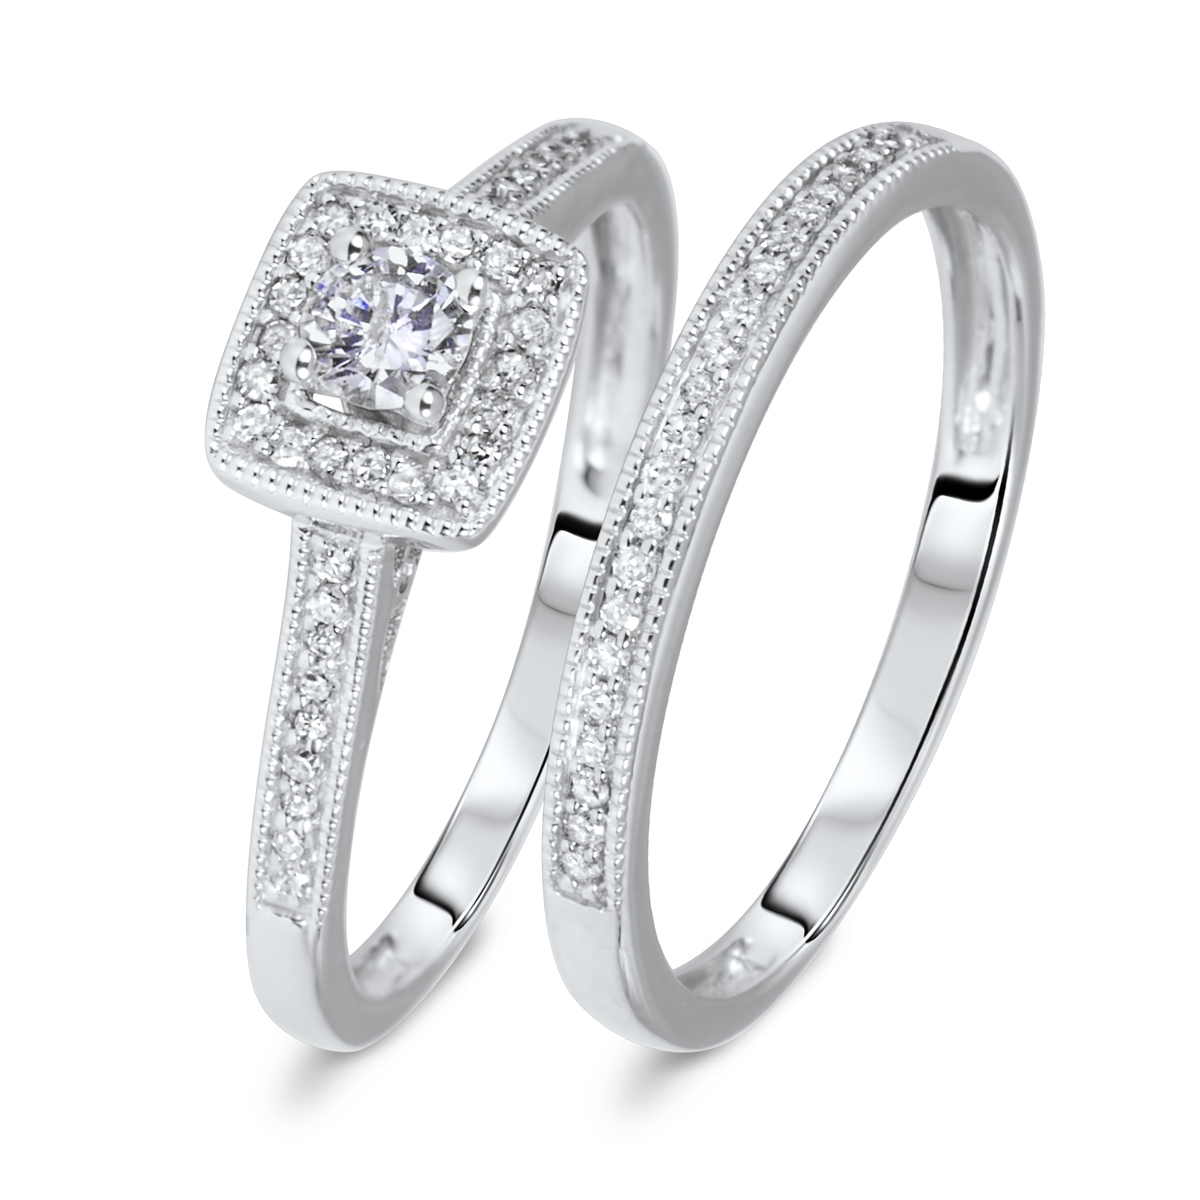 Superieur T.W. Round Cut Diamond Ladies Bridal Wedding Ring Set 10K White Gold